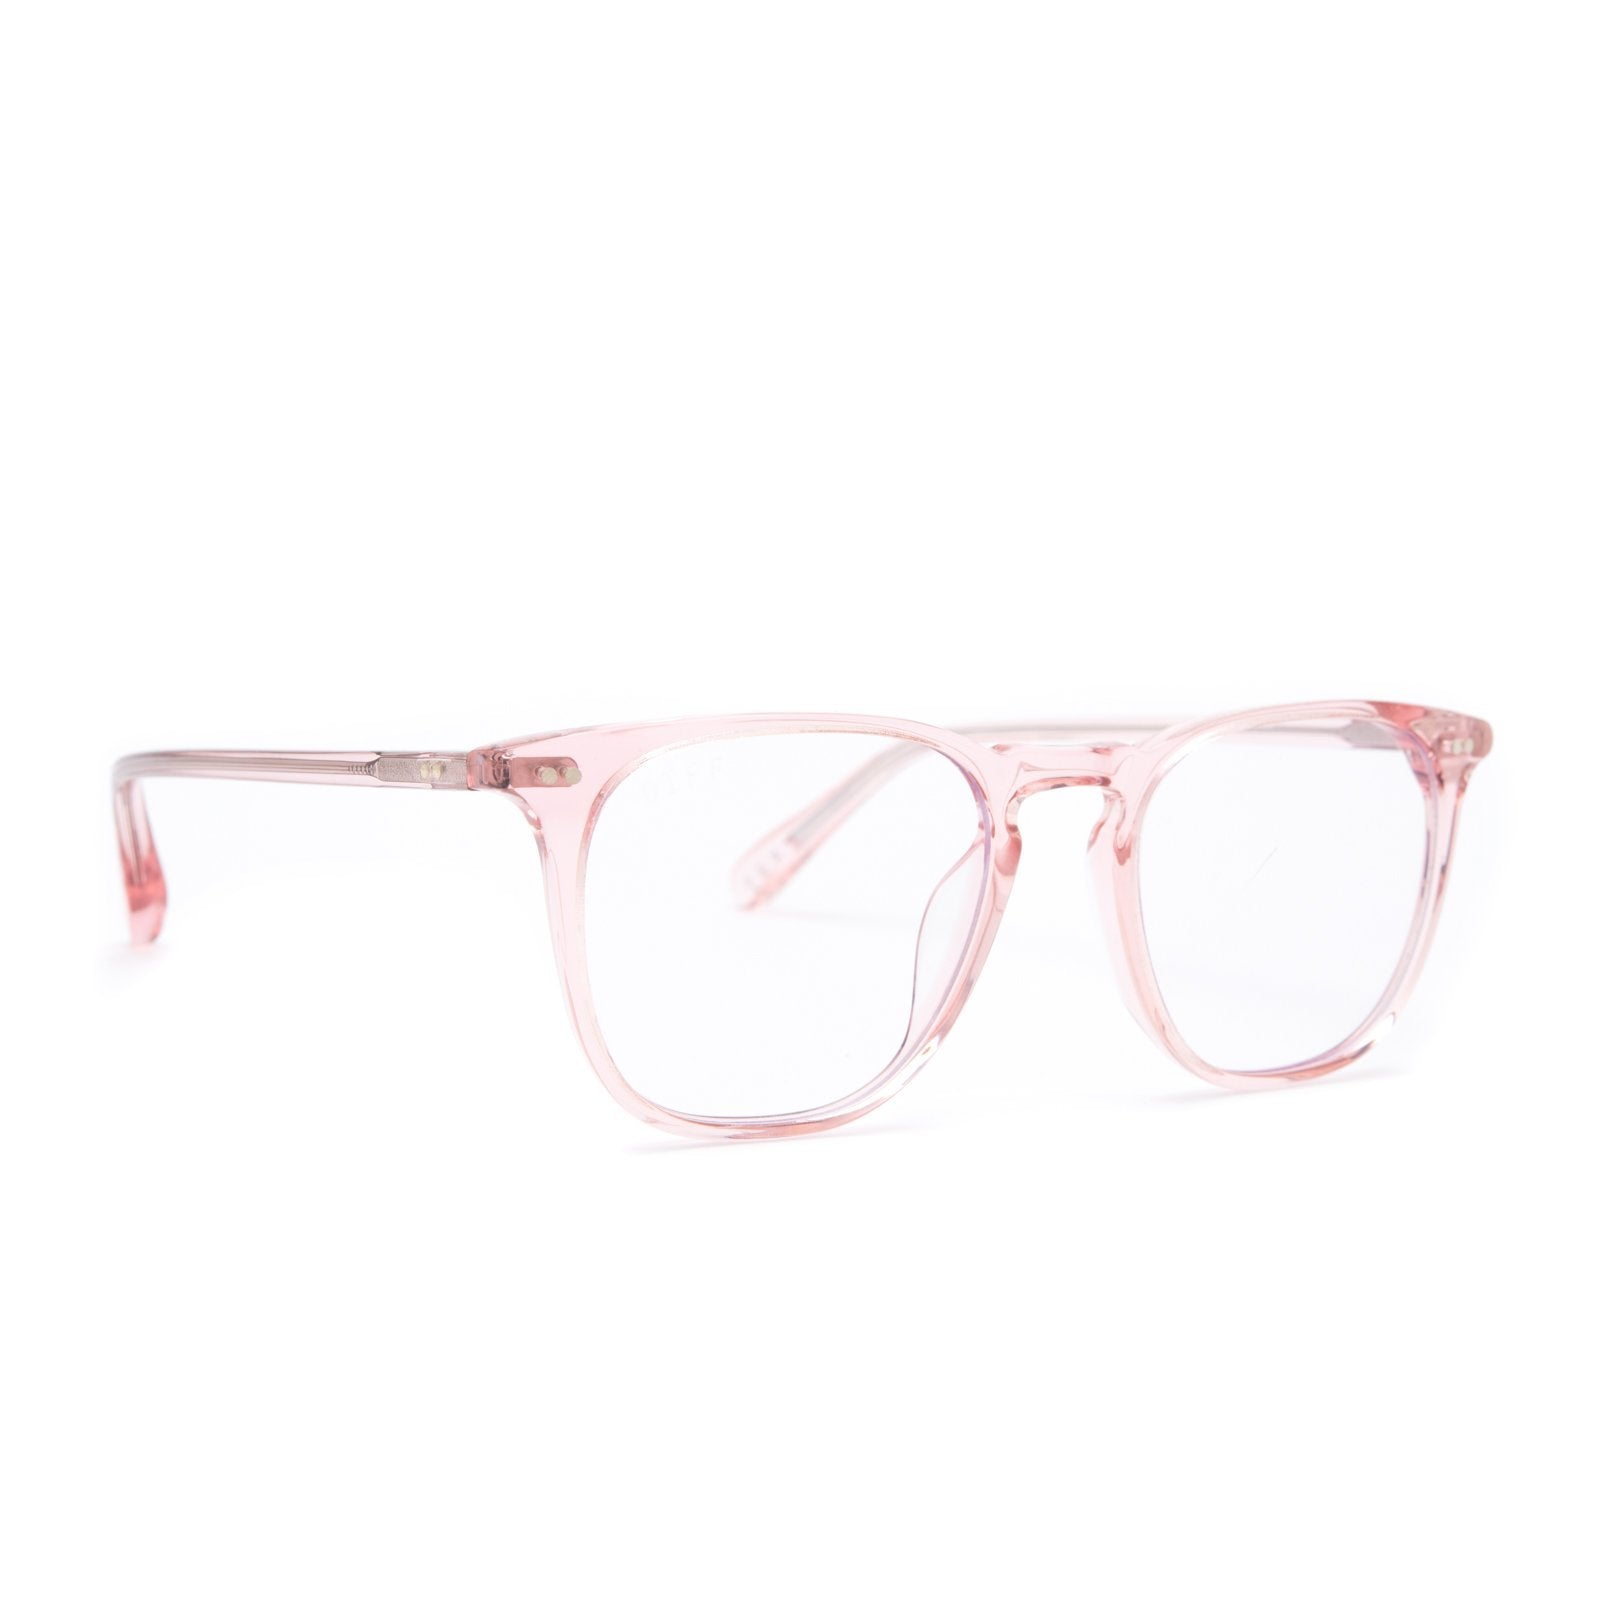 Maxwell glasses light pink frames with blue light technology angle view